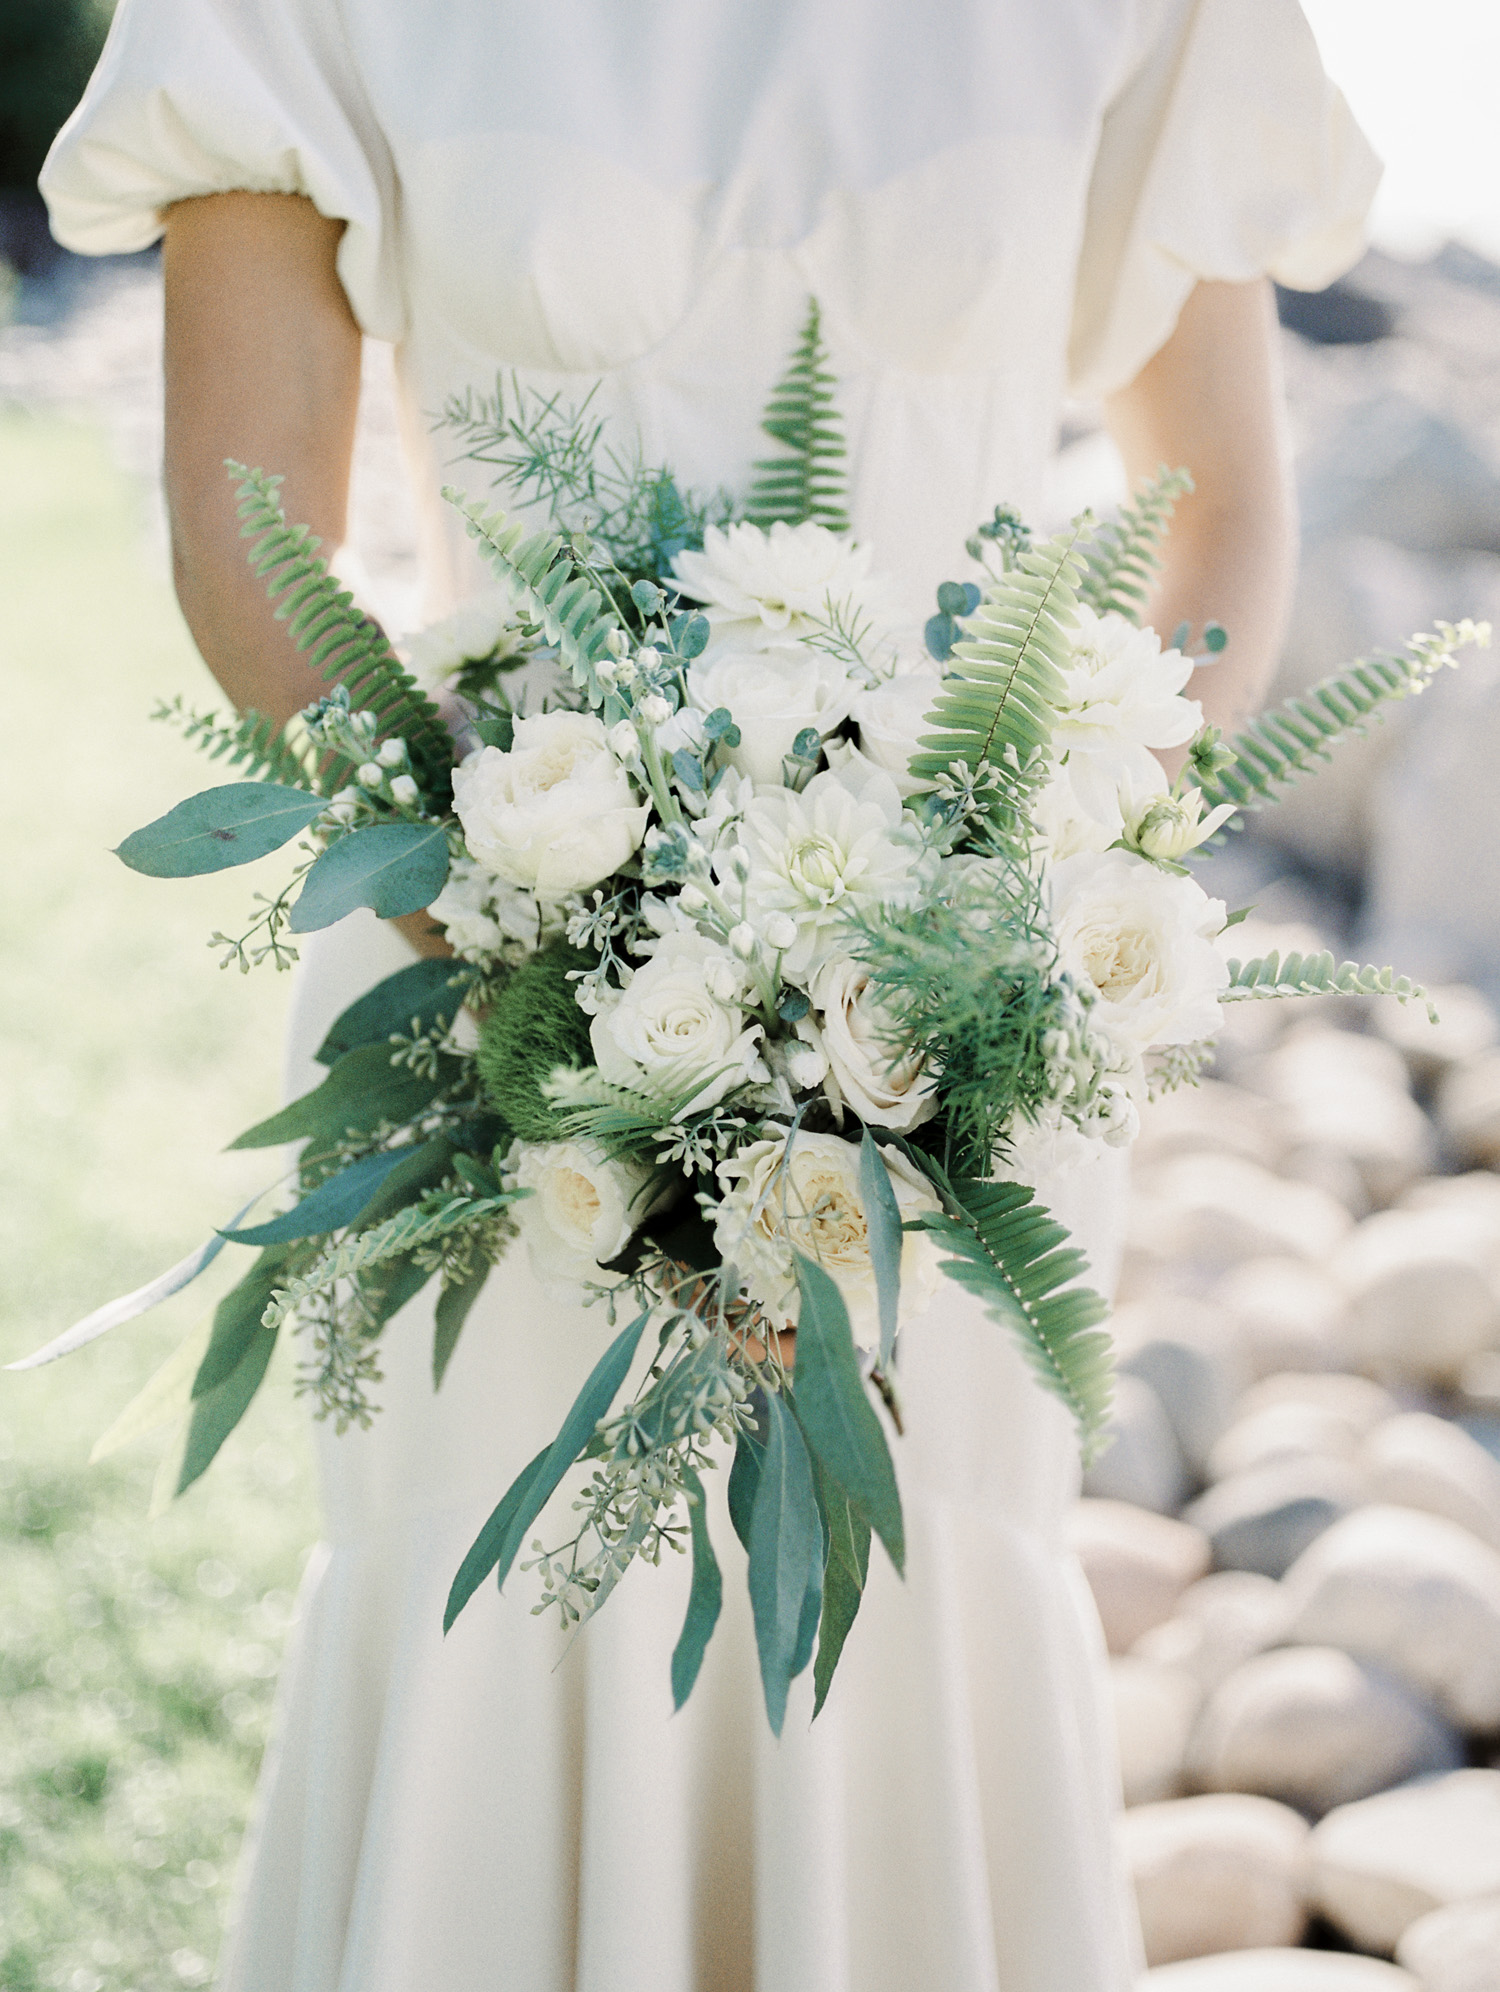 A green and white bridal bouquet with ferns for a wedding in Petoskey, Northern Michigan